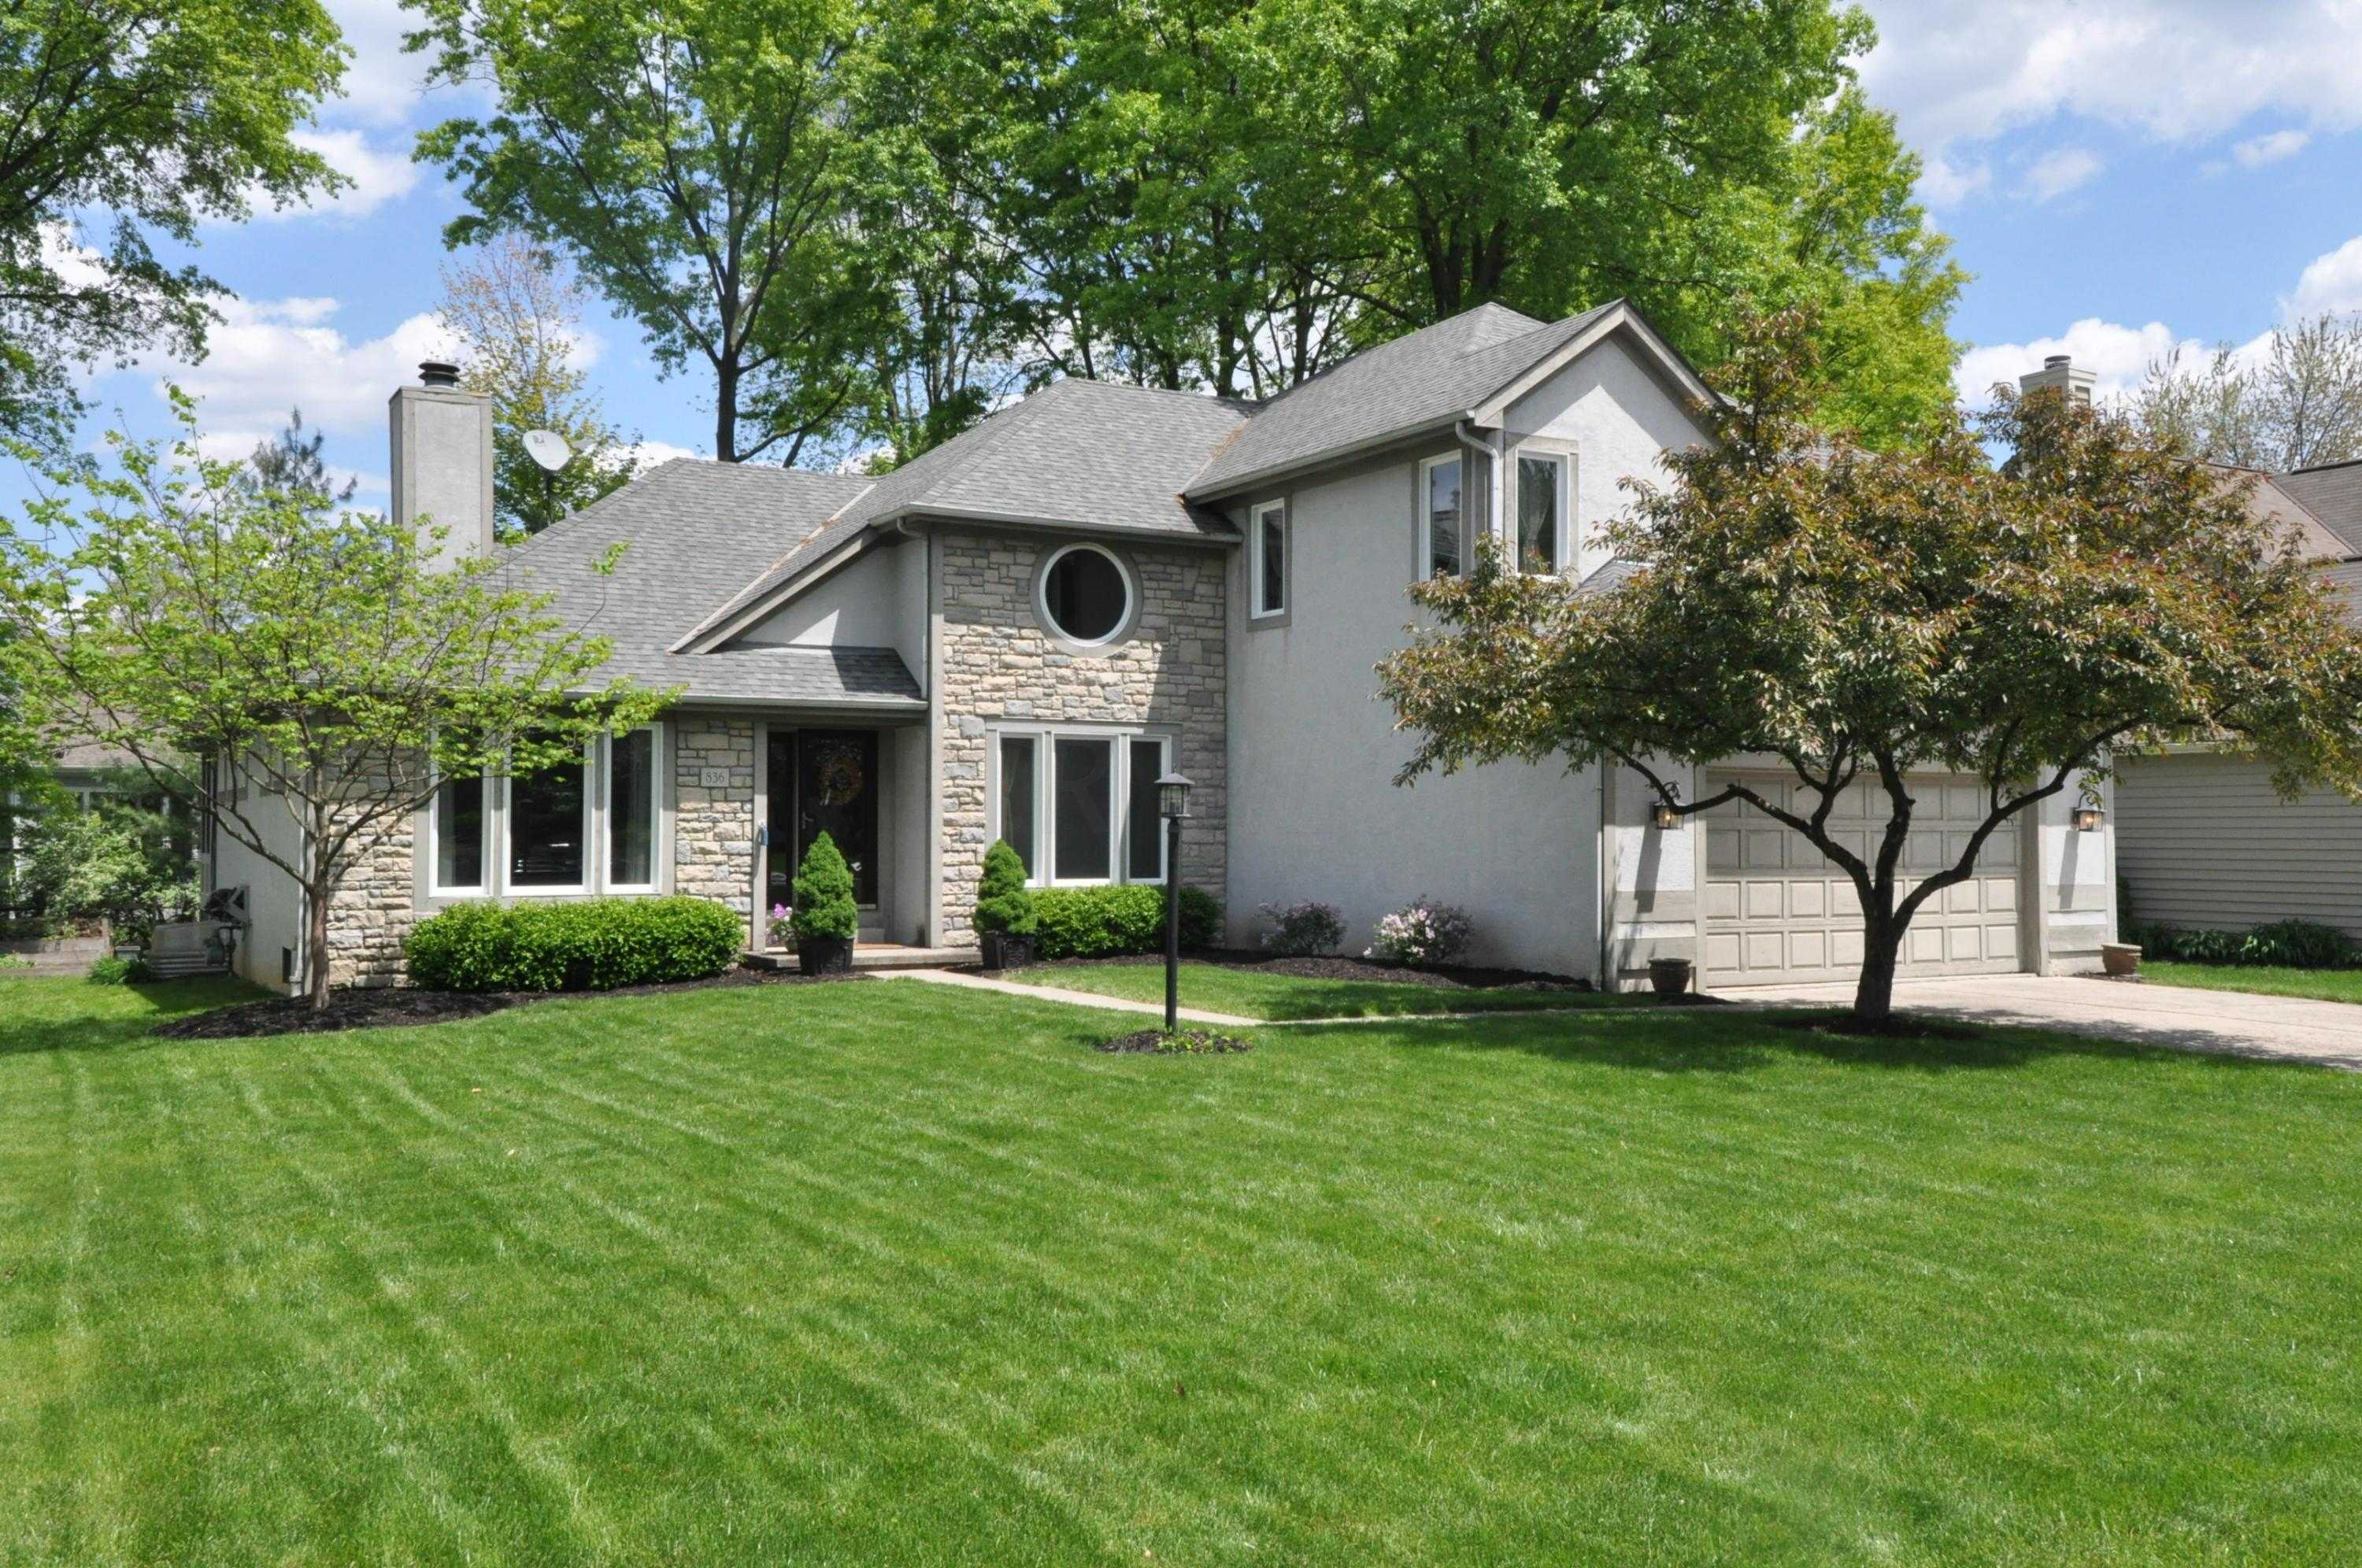 Homes for Sale in Gahanna - Achievers Real Estate